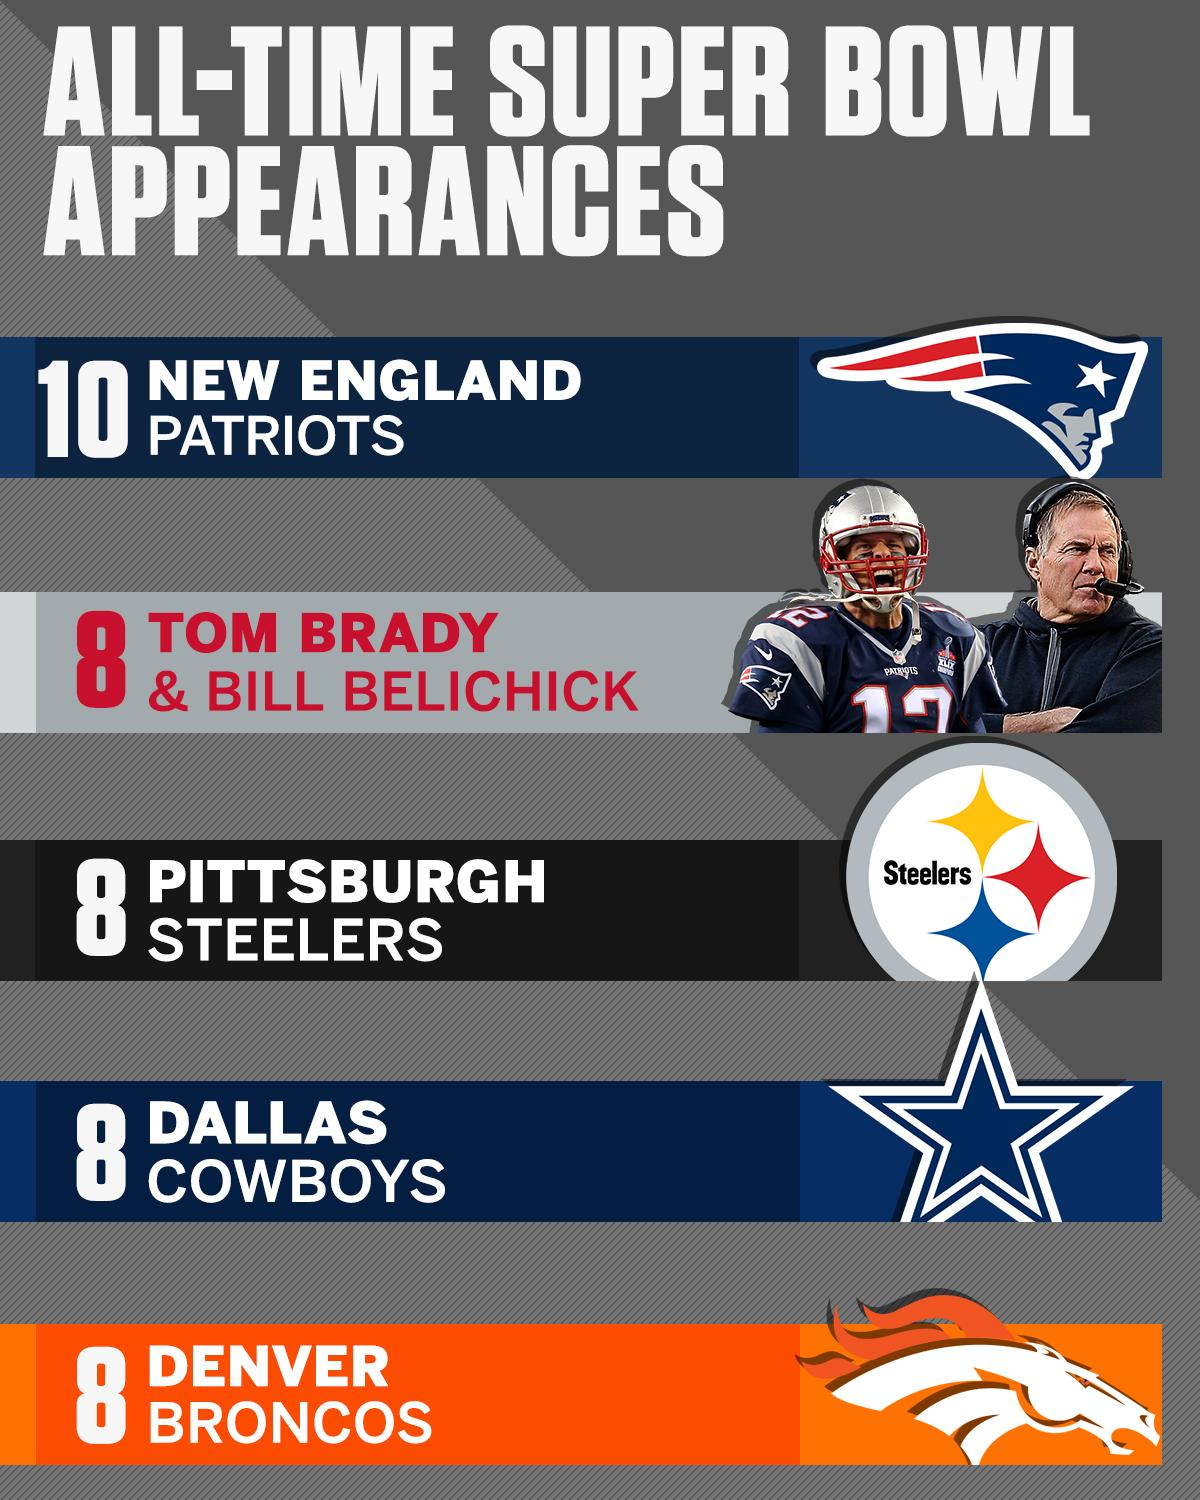 The Tom Brady-Bill Belichick duo has made it to more Super Bowls than 28 FRANCHISES have. https://t.co/PelFFNOoWv